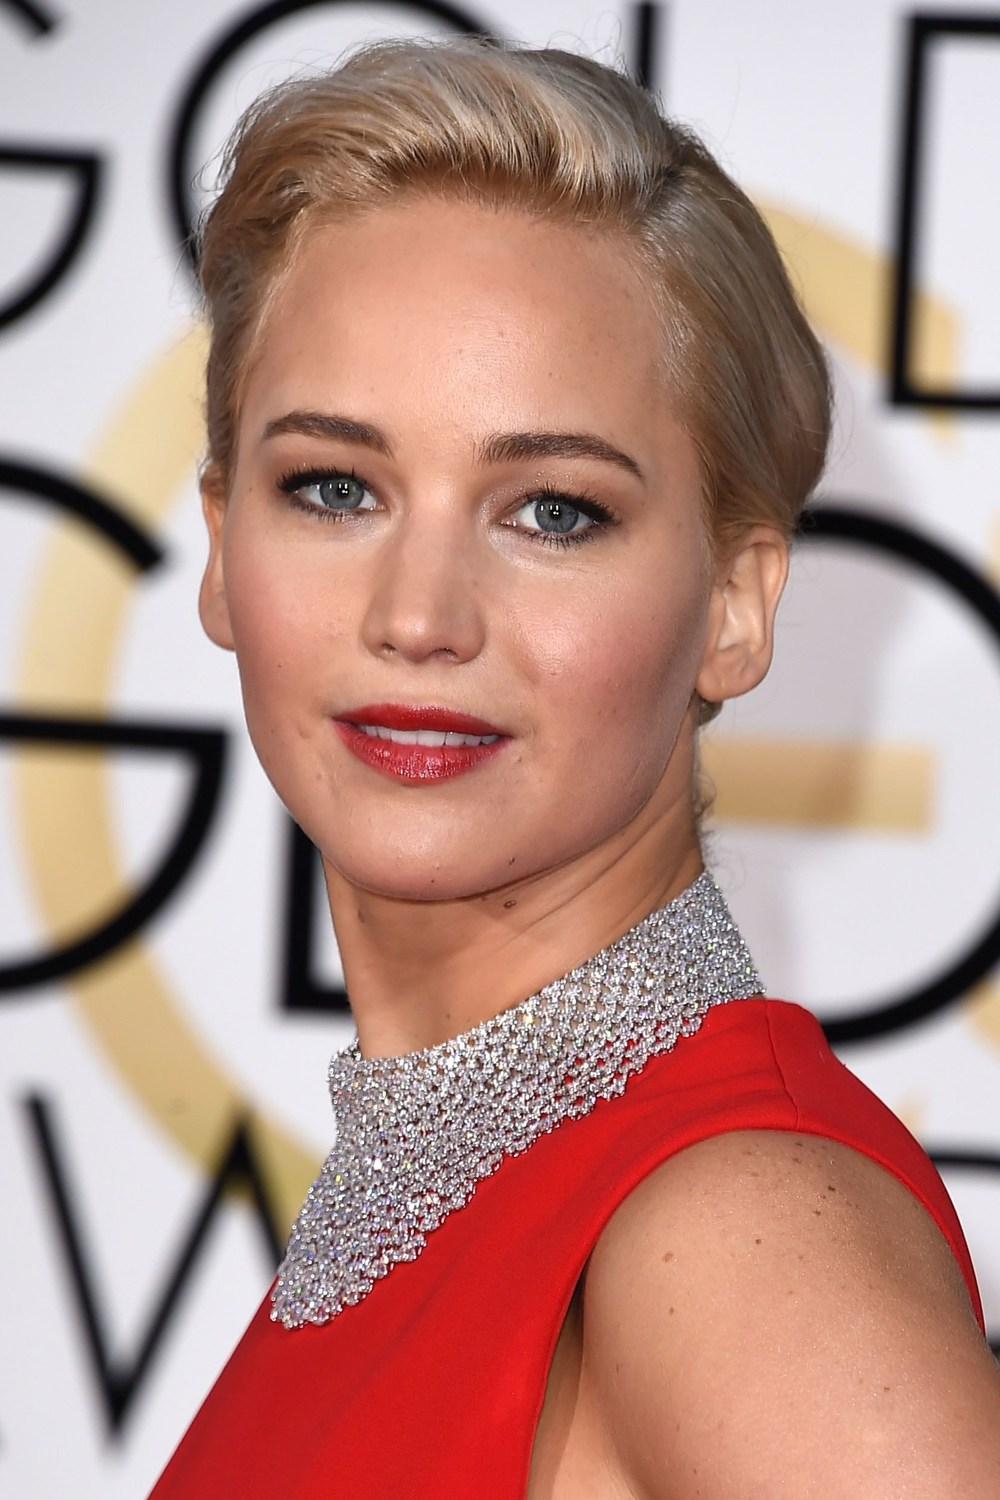 Our fave total babe, Jennifer Lawrence, wore her hair swept into a low chignon, whilst the focus of her make-up look was bold red lips to match her Dior dress.